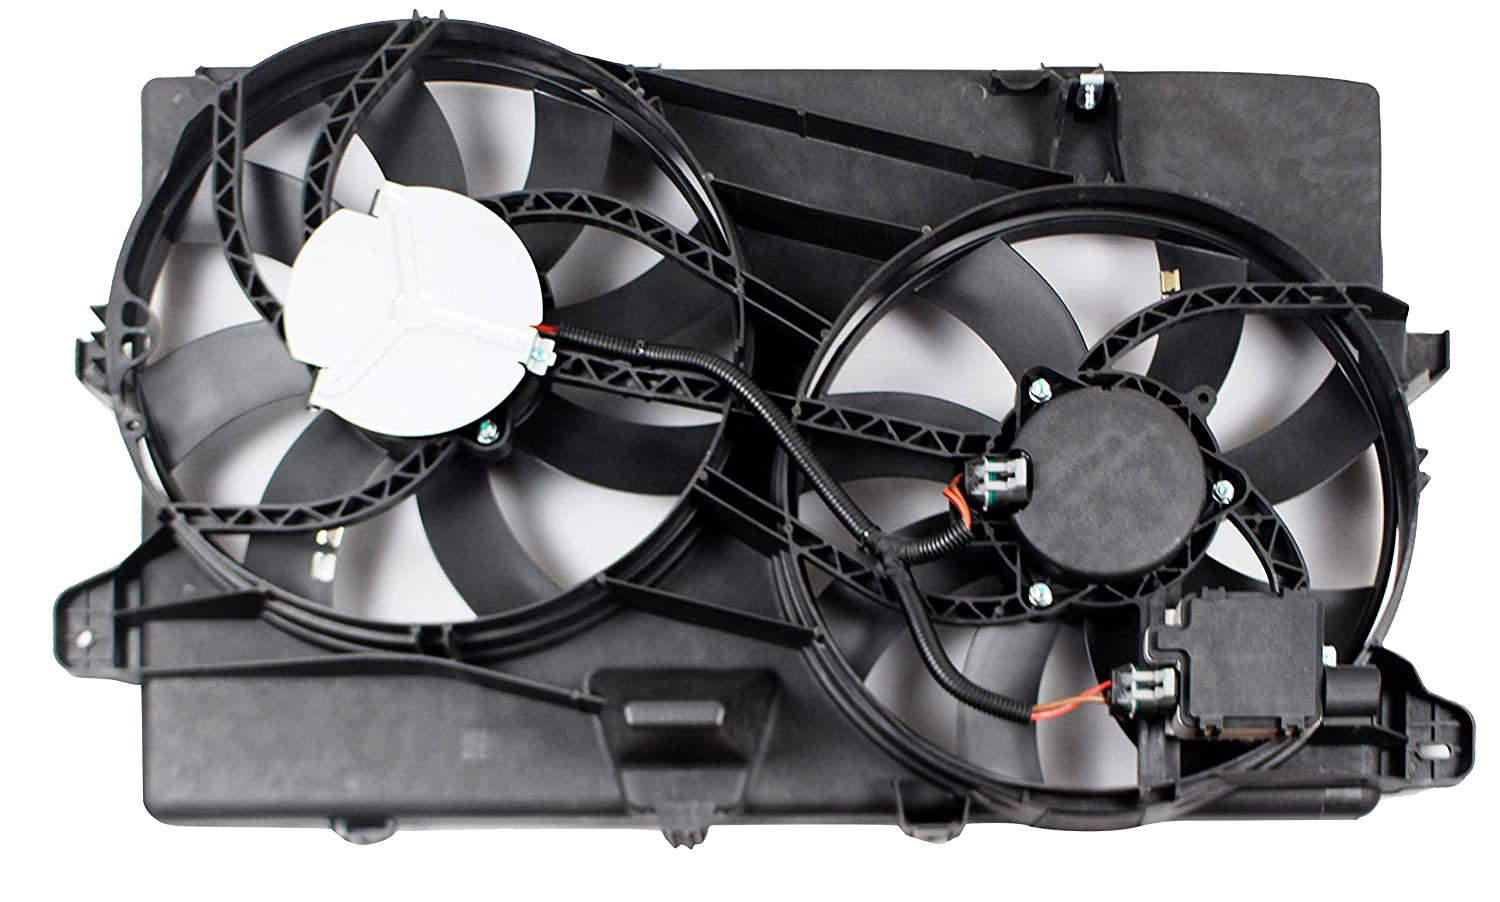 BOXI Dual Radiator Cooling Fan Assembly For Ford Edge 2007-2015 Lincoln MKX 2007-2015 7T4Z8C607A